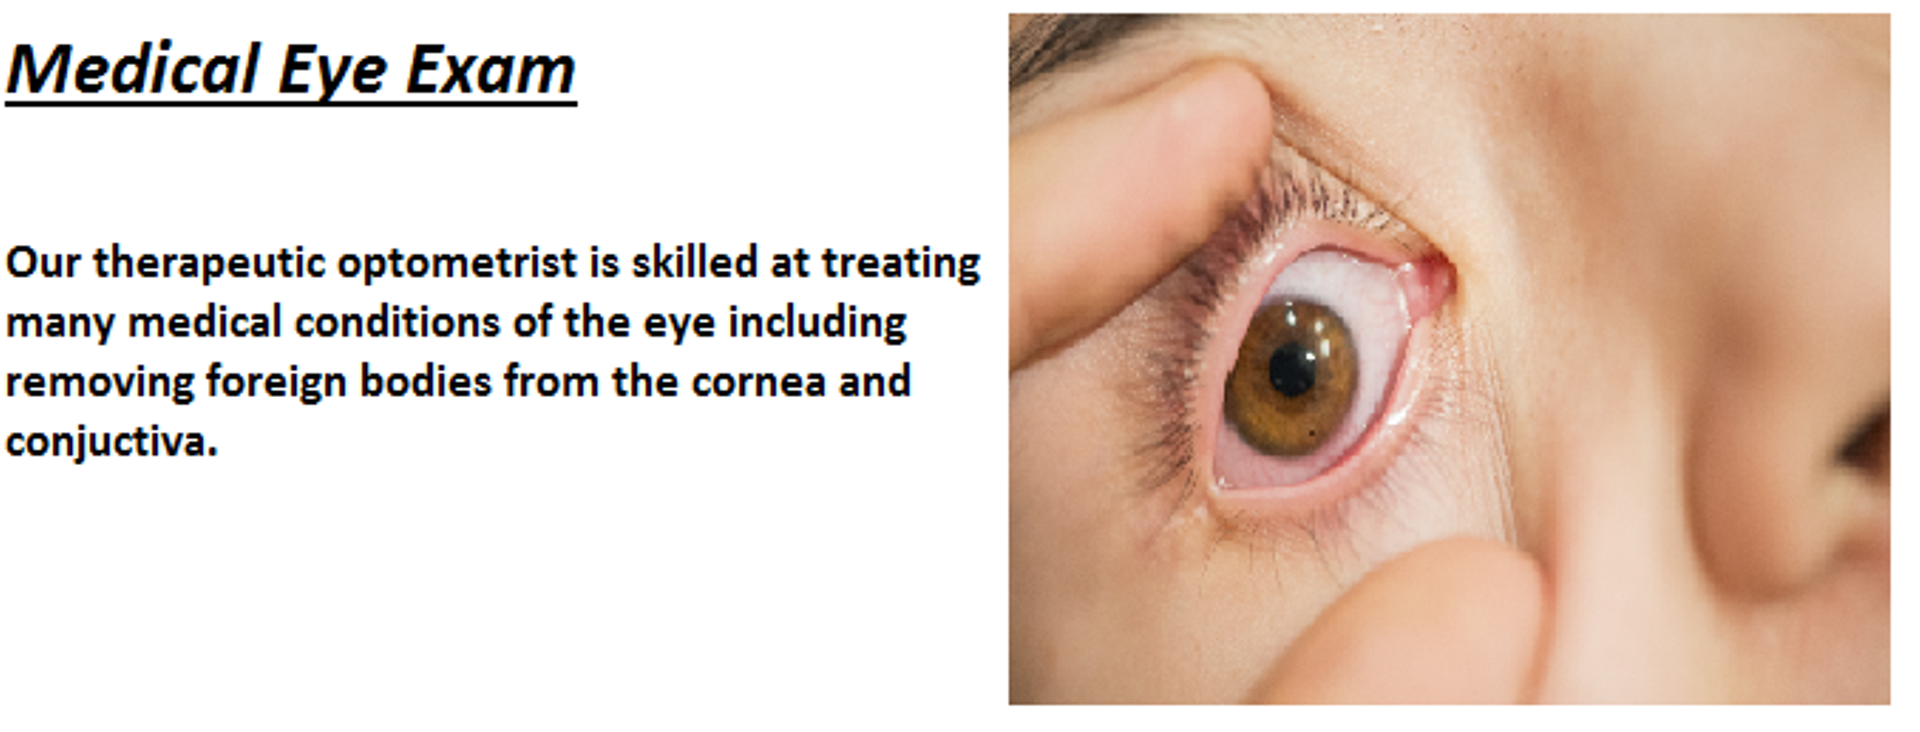 Medical-eye-exam-for-website.png